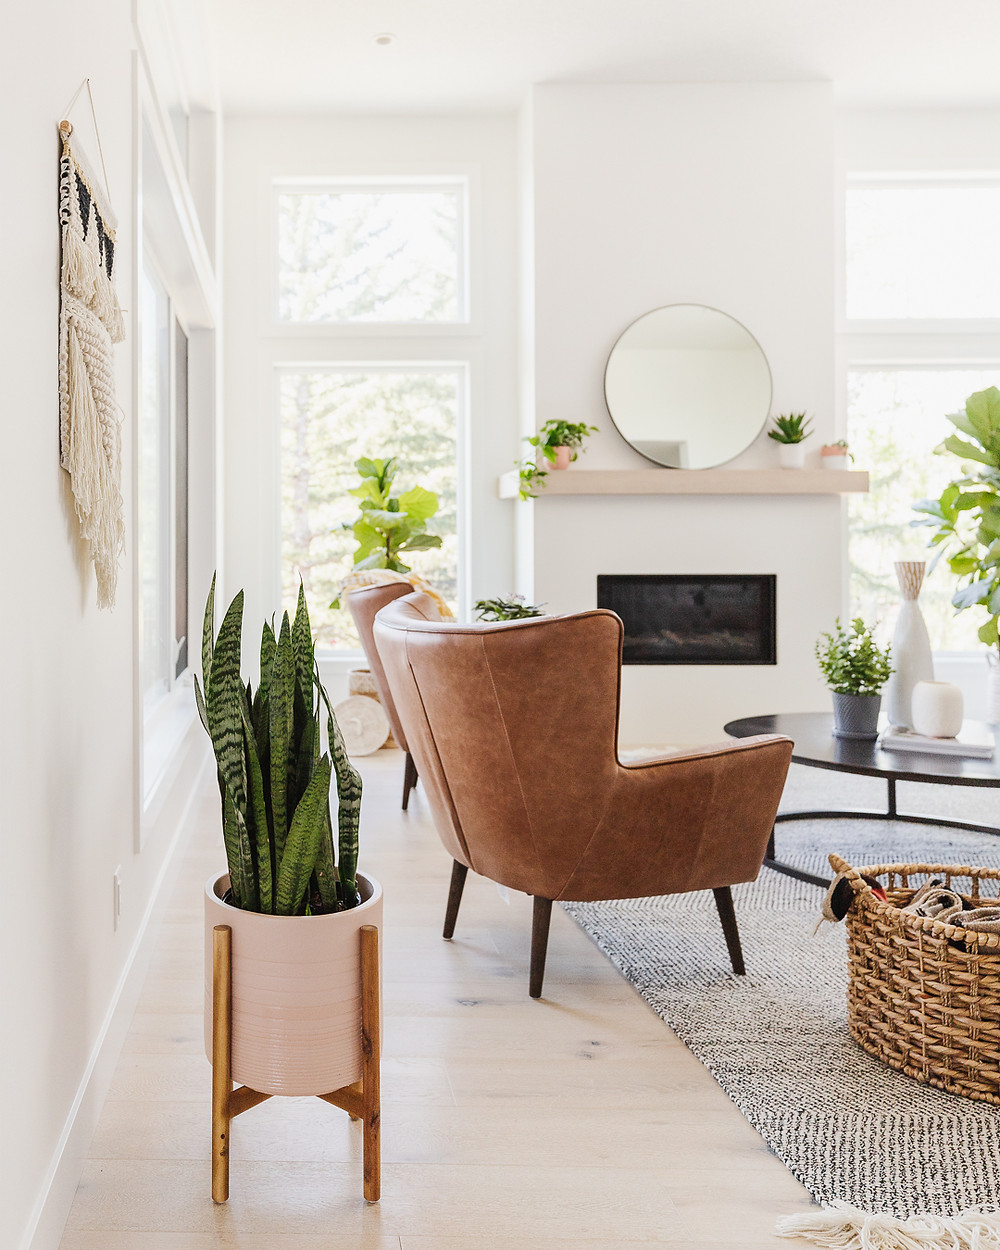 Snake plant in pot on floor with wood stand white and black macramé wall hanging brown leather arm chairs fireplace with wood mantle round mirror with plants fiddle leaf fig basket on floor